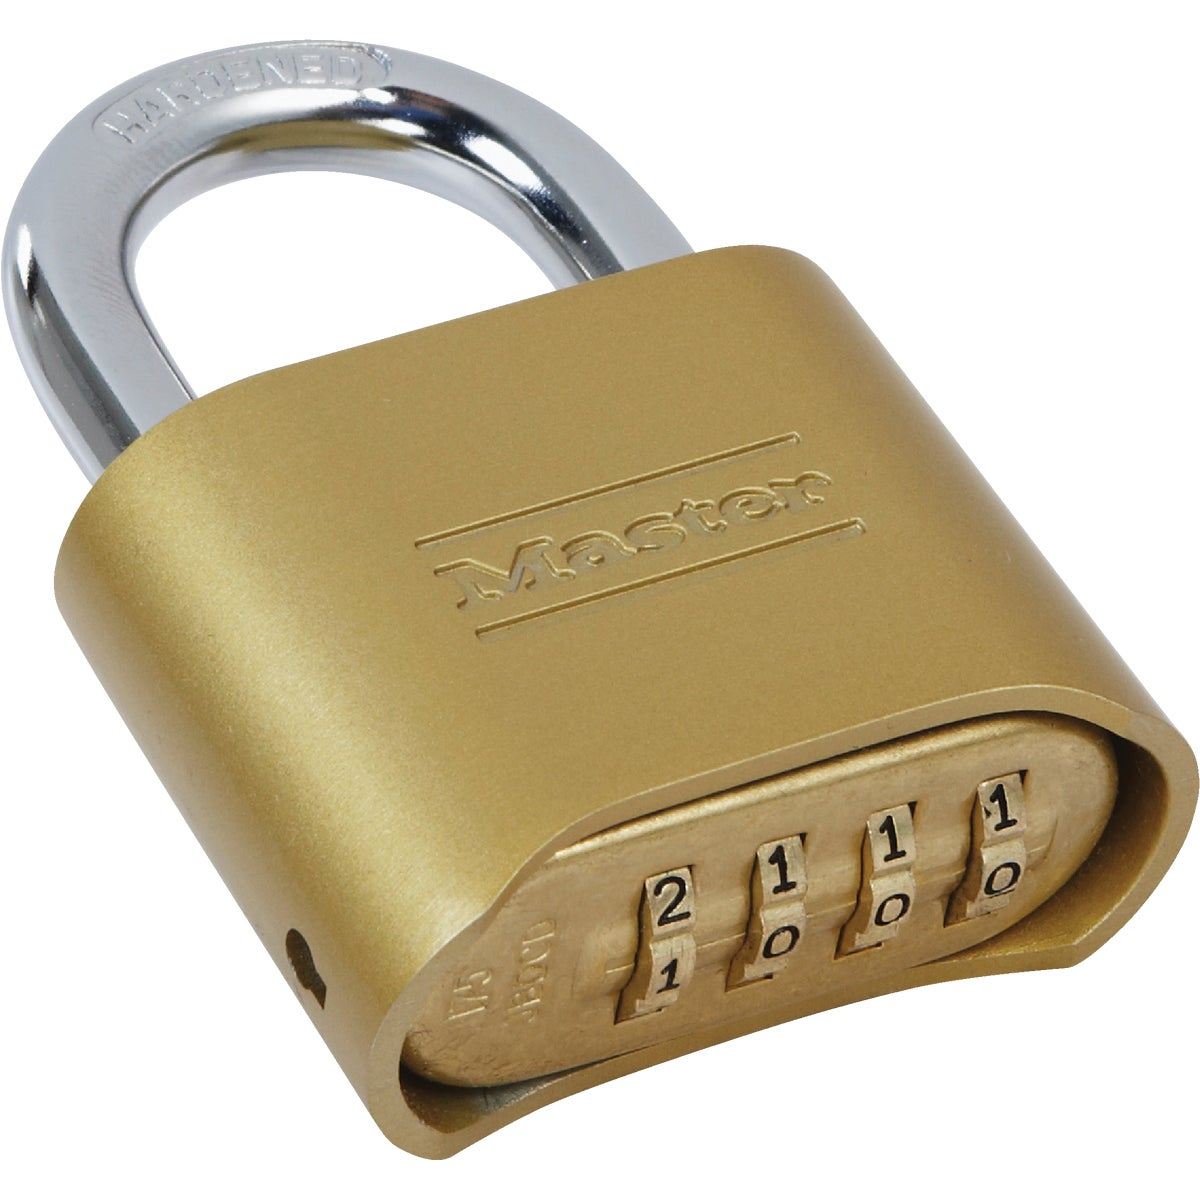 RESET COMBINATION LOCK - 175D by Master Lock Company